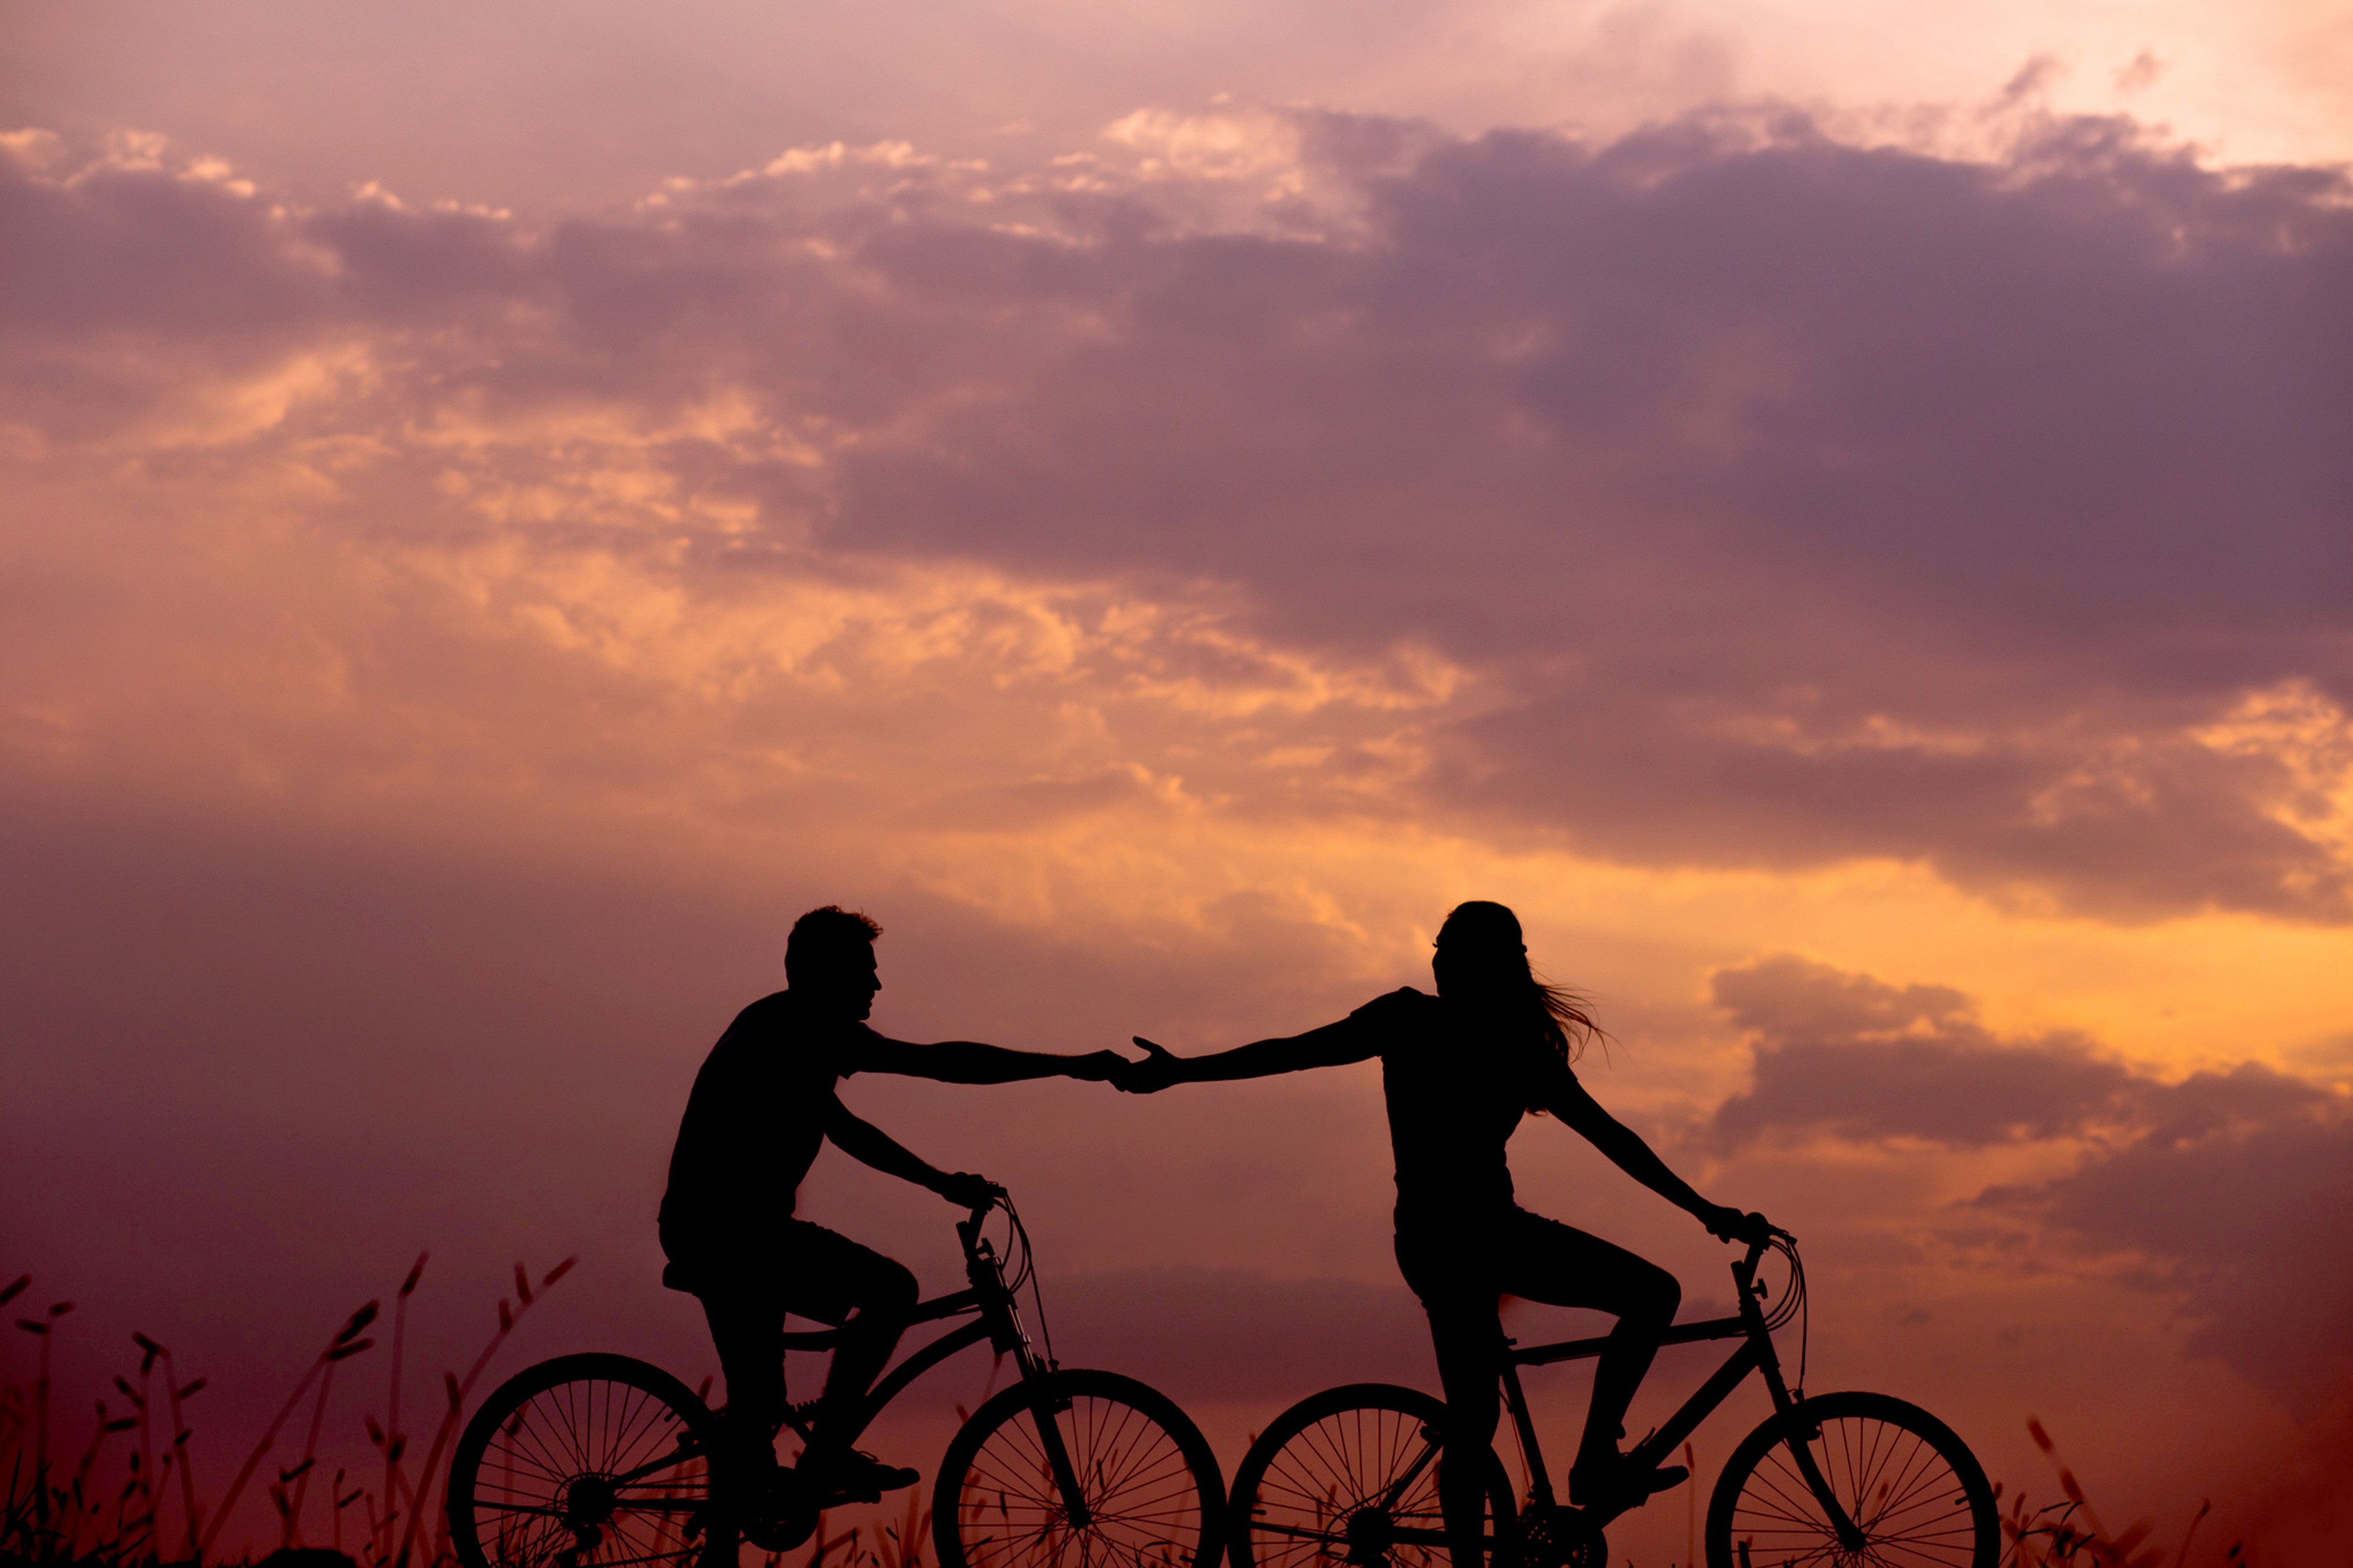 Two bicyclists holding hands while riding on separate bikes